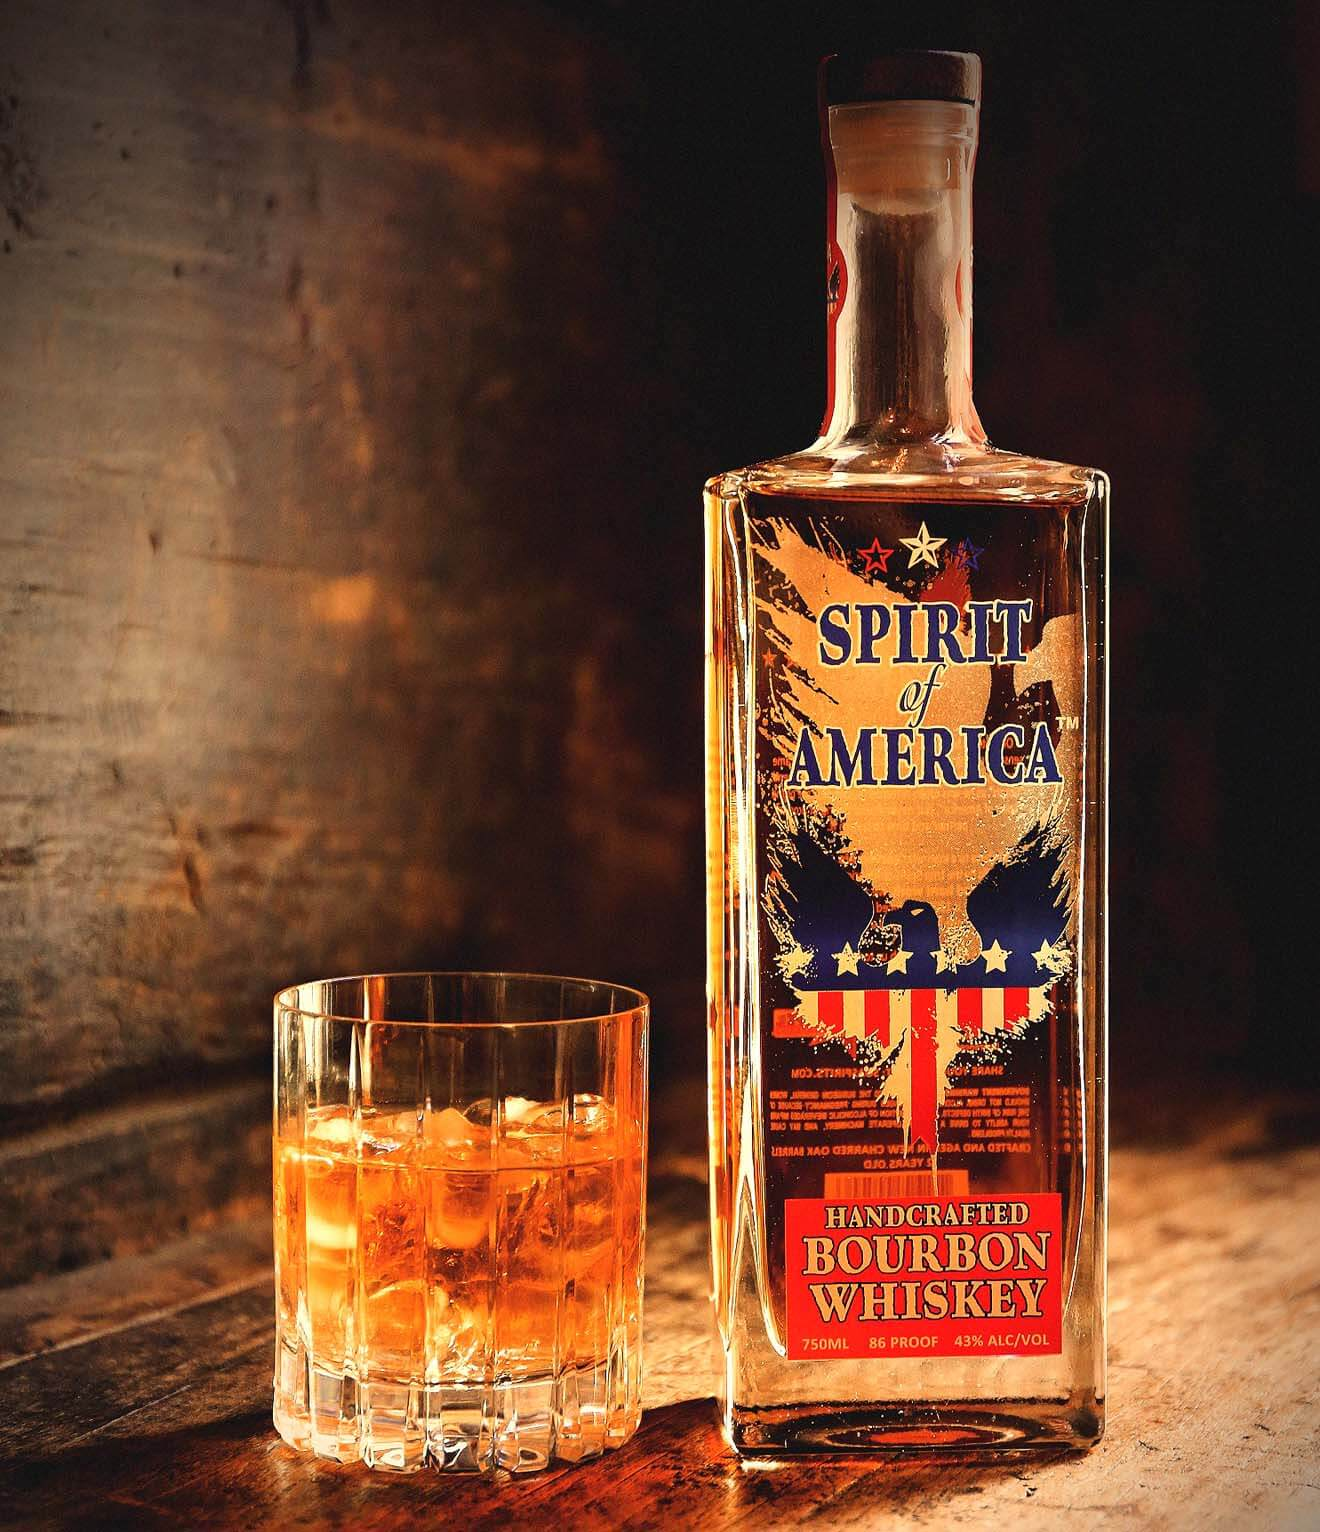 Spirit of America Handcrafted Bourbon Whiskey